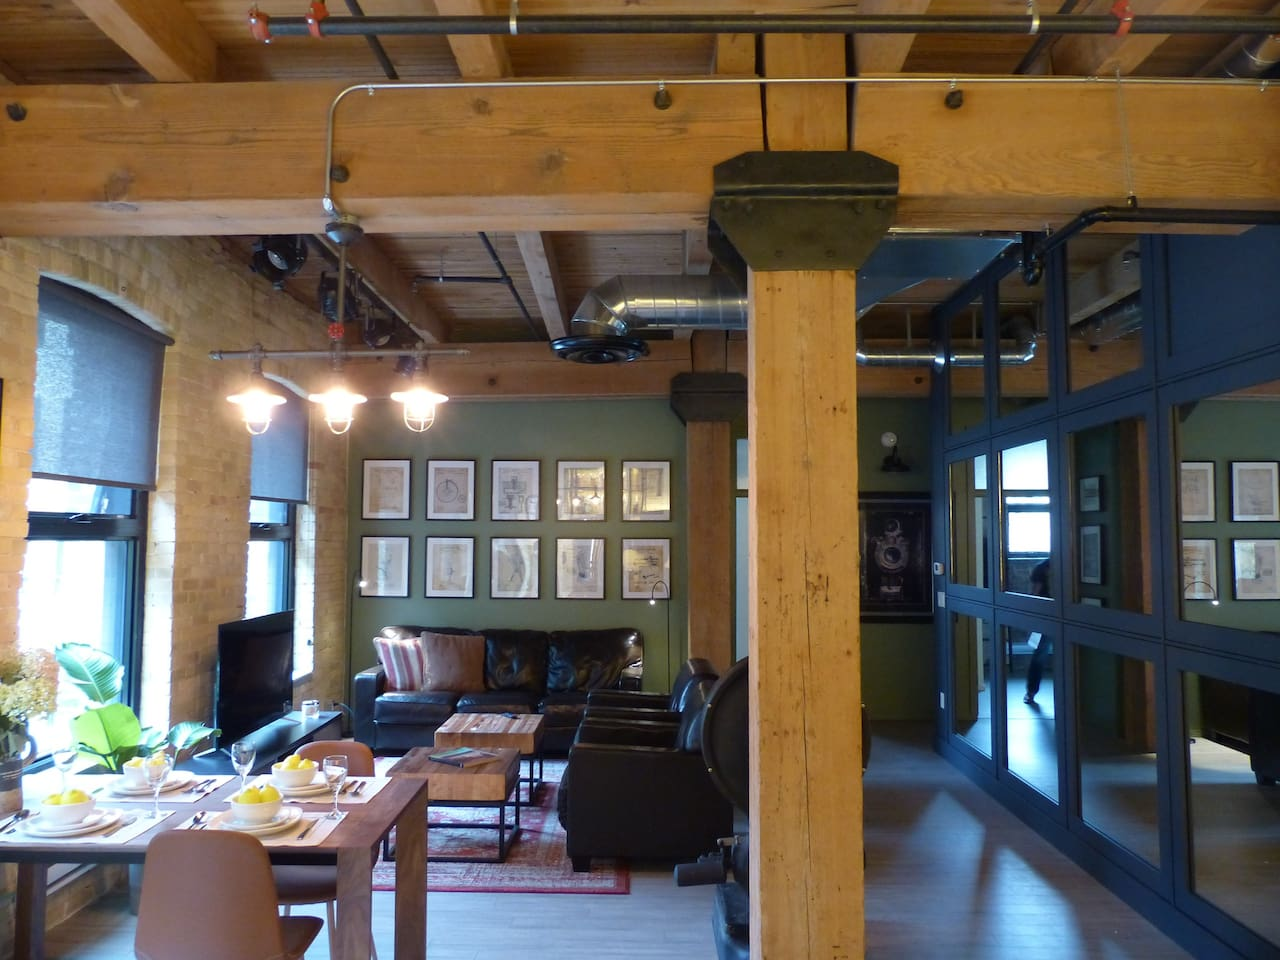 Open concept with 100 year old exposed Brick and Heavy Timbers. These are some of the architectural features that make this loft so inviting